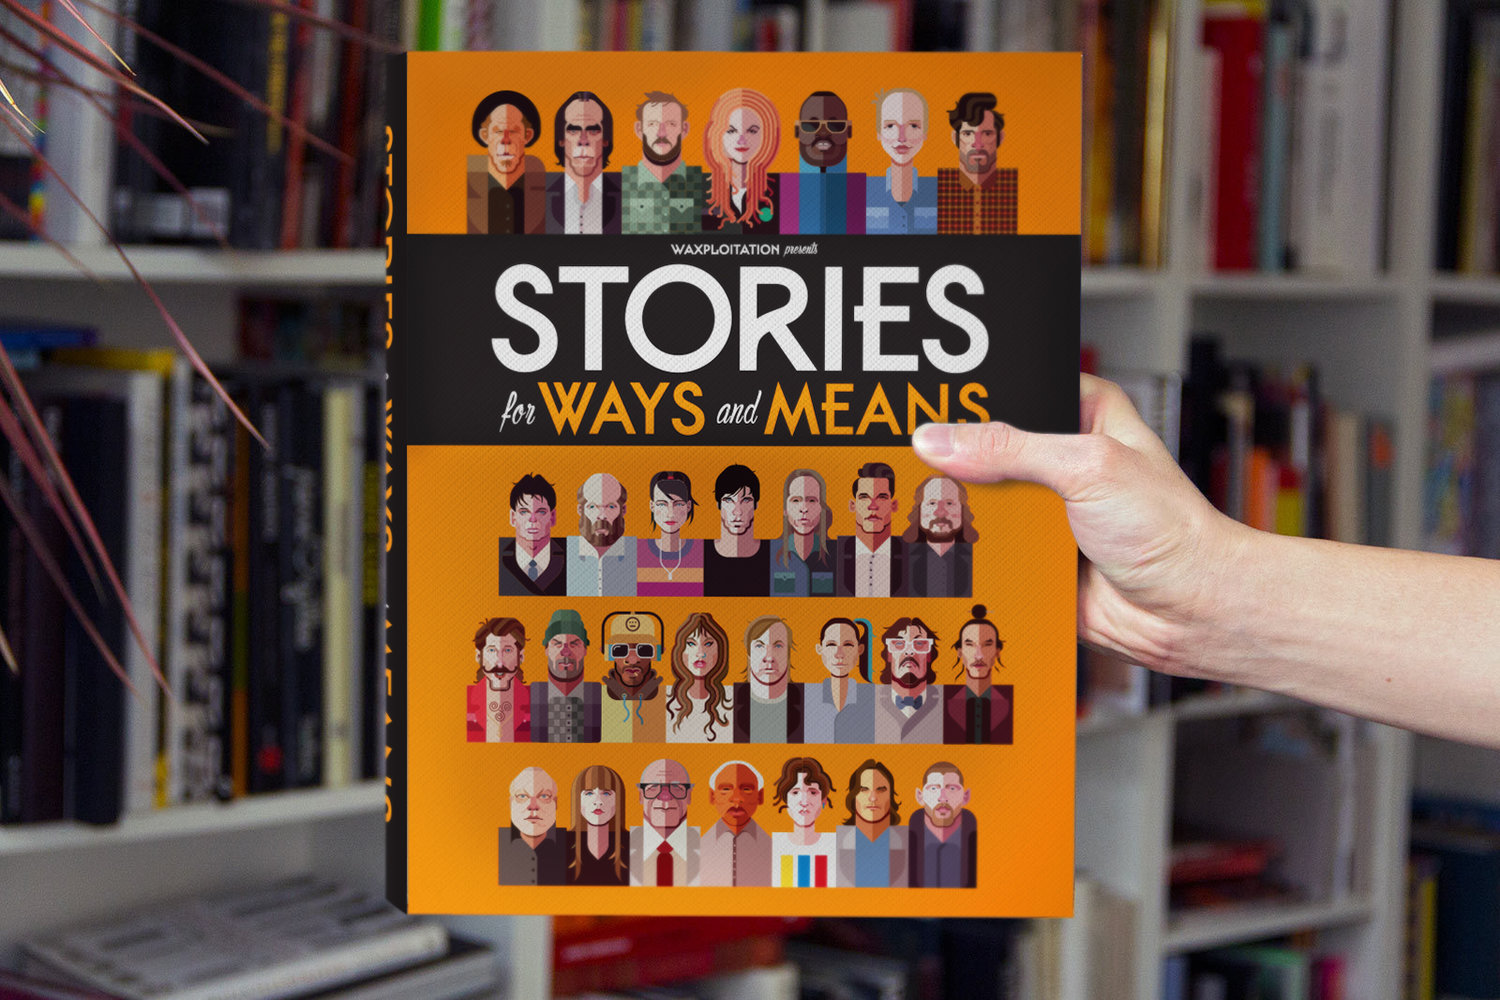 Stories for Ways and Means contains 29 illustrated stories. The standard hardcover edition costs $98